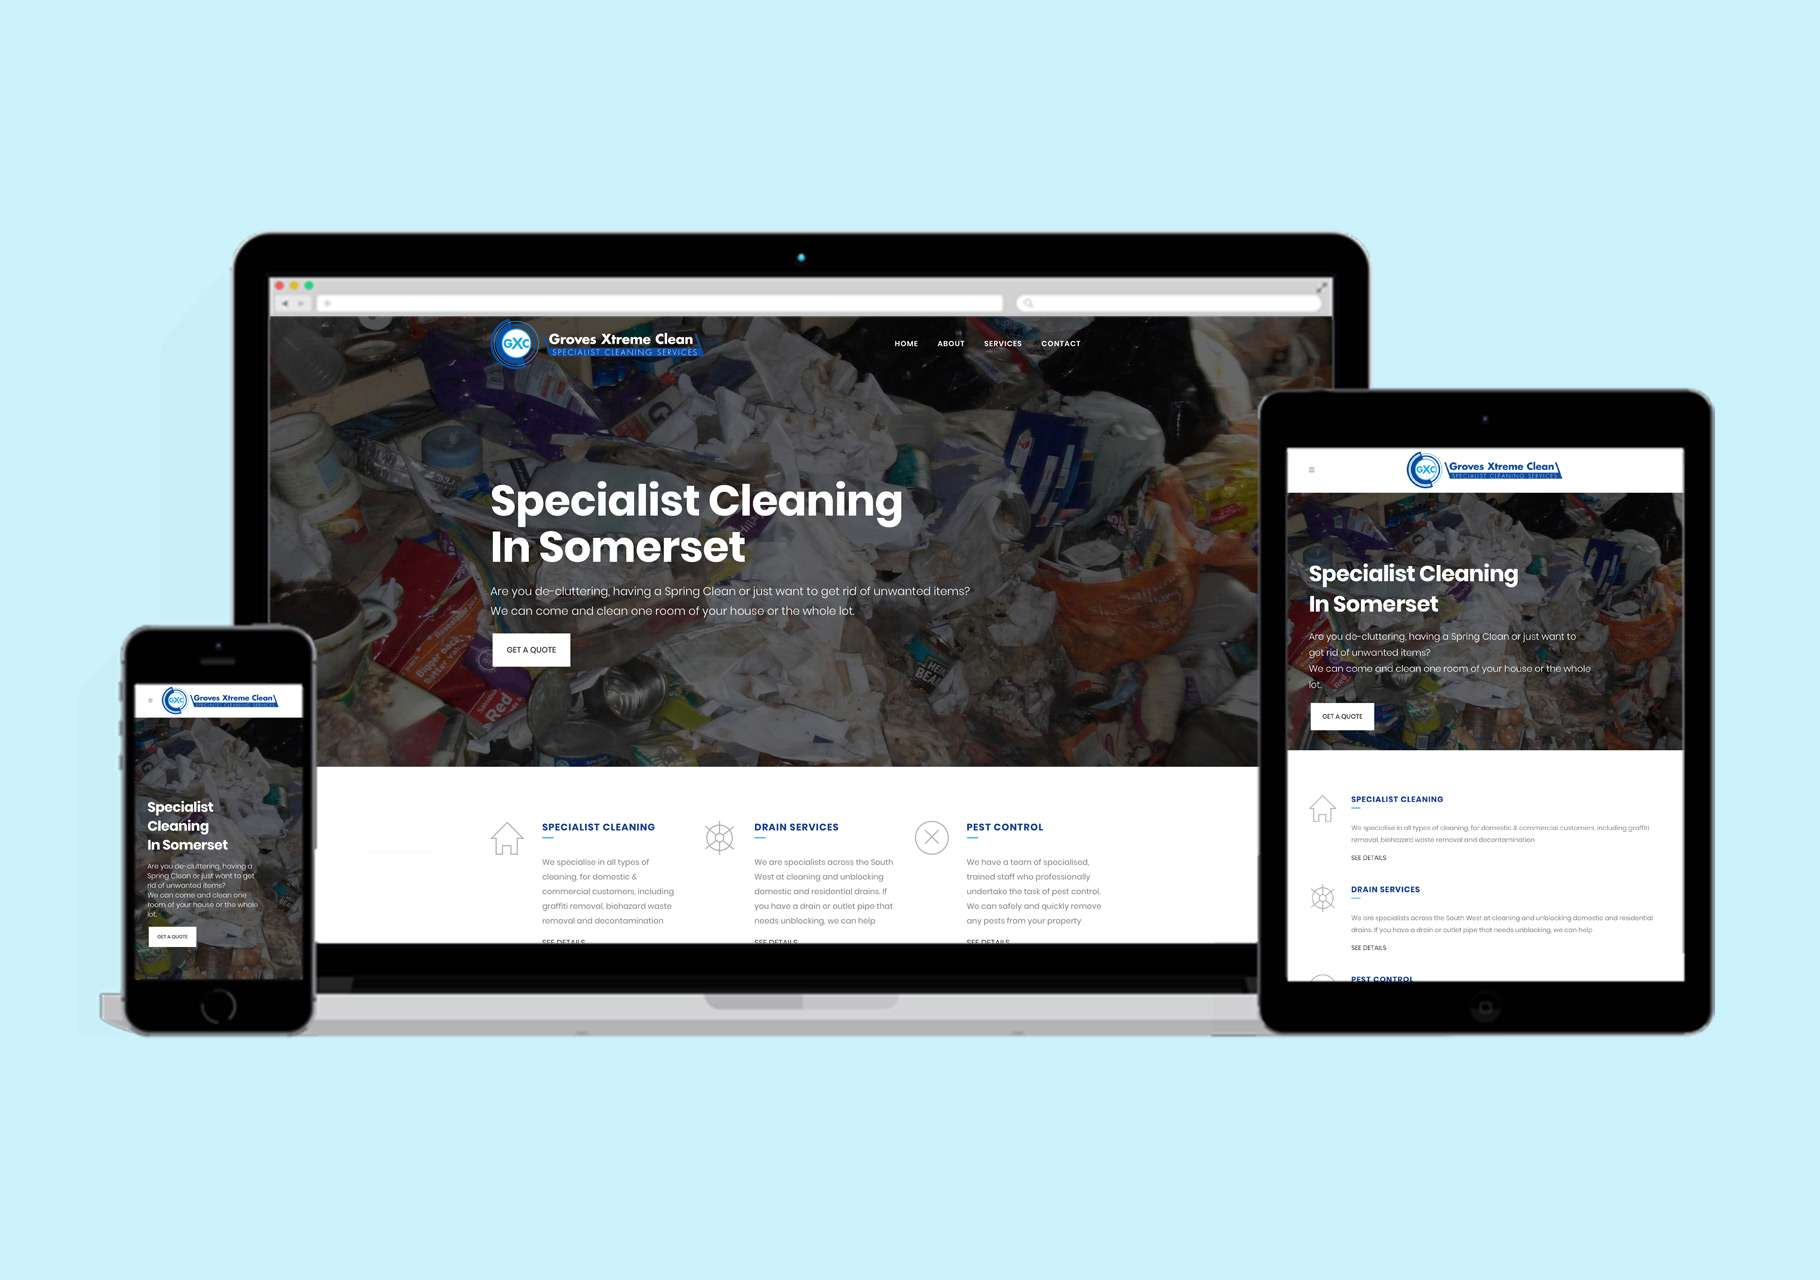 groves xtreme clean website design somerset